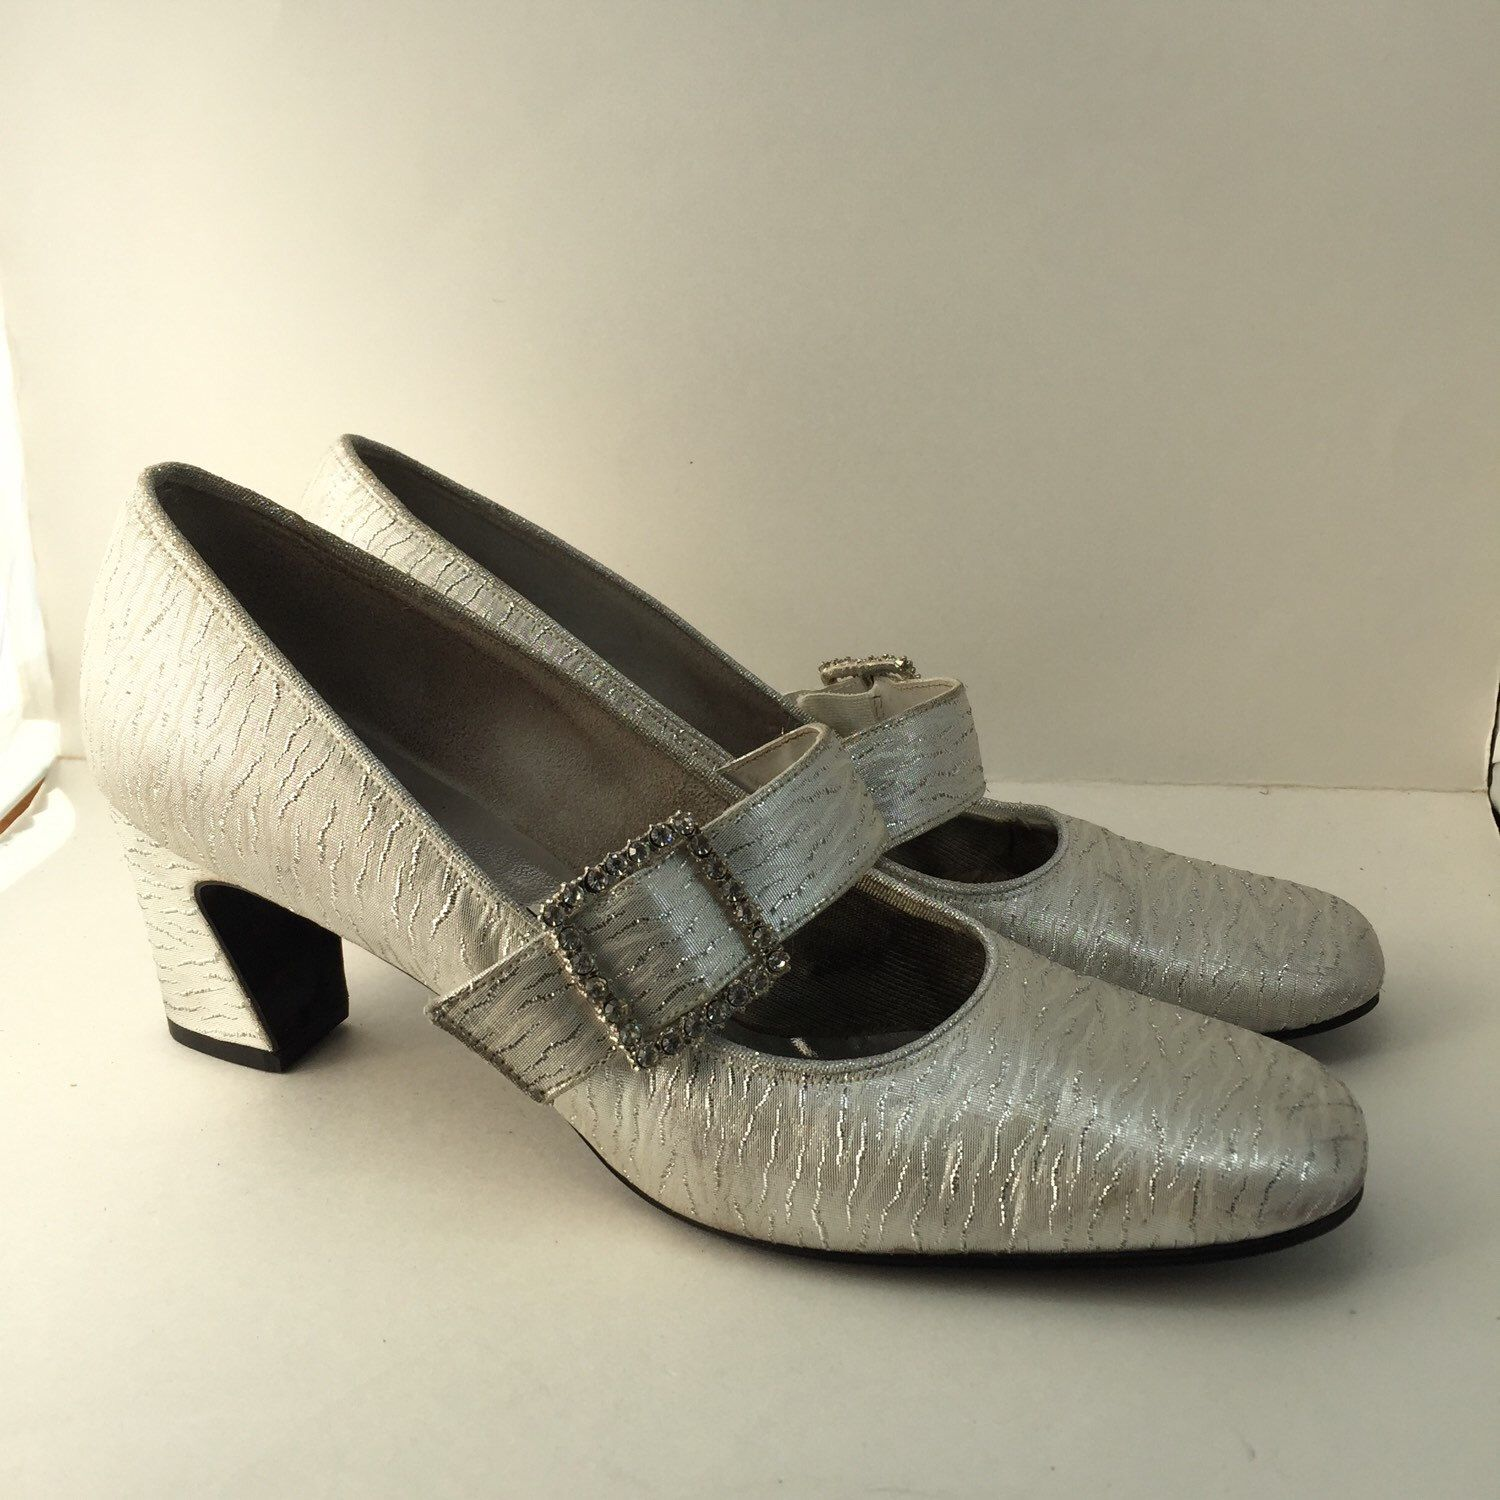 a713019e6ad01 Metallic Silver Mary-Jane Shoes with Rhinestone Buckle Square Toe ...